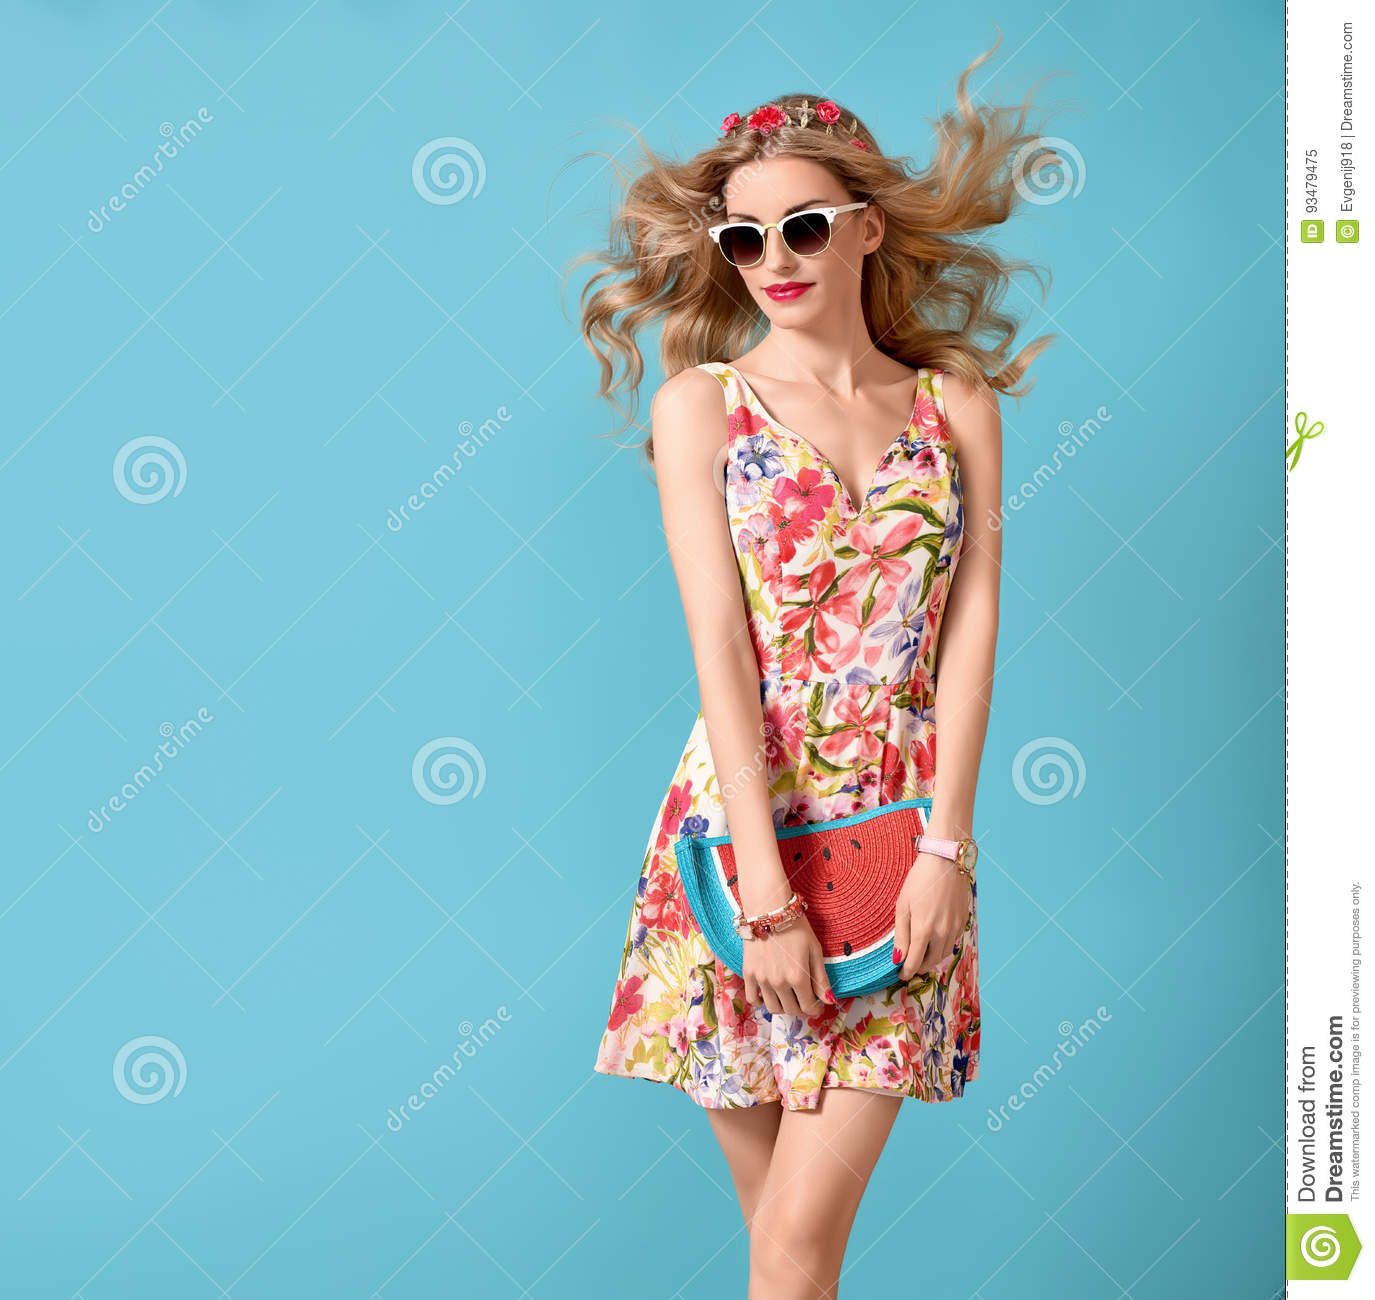 145a9b00e Fashion Beauty woman in Summer Outfit. Sensual Blond Model in fashion pose.  Trendy Floral summer Dress